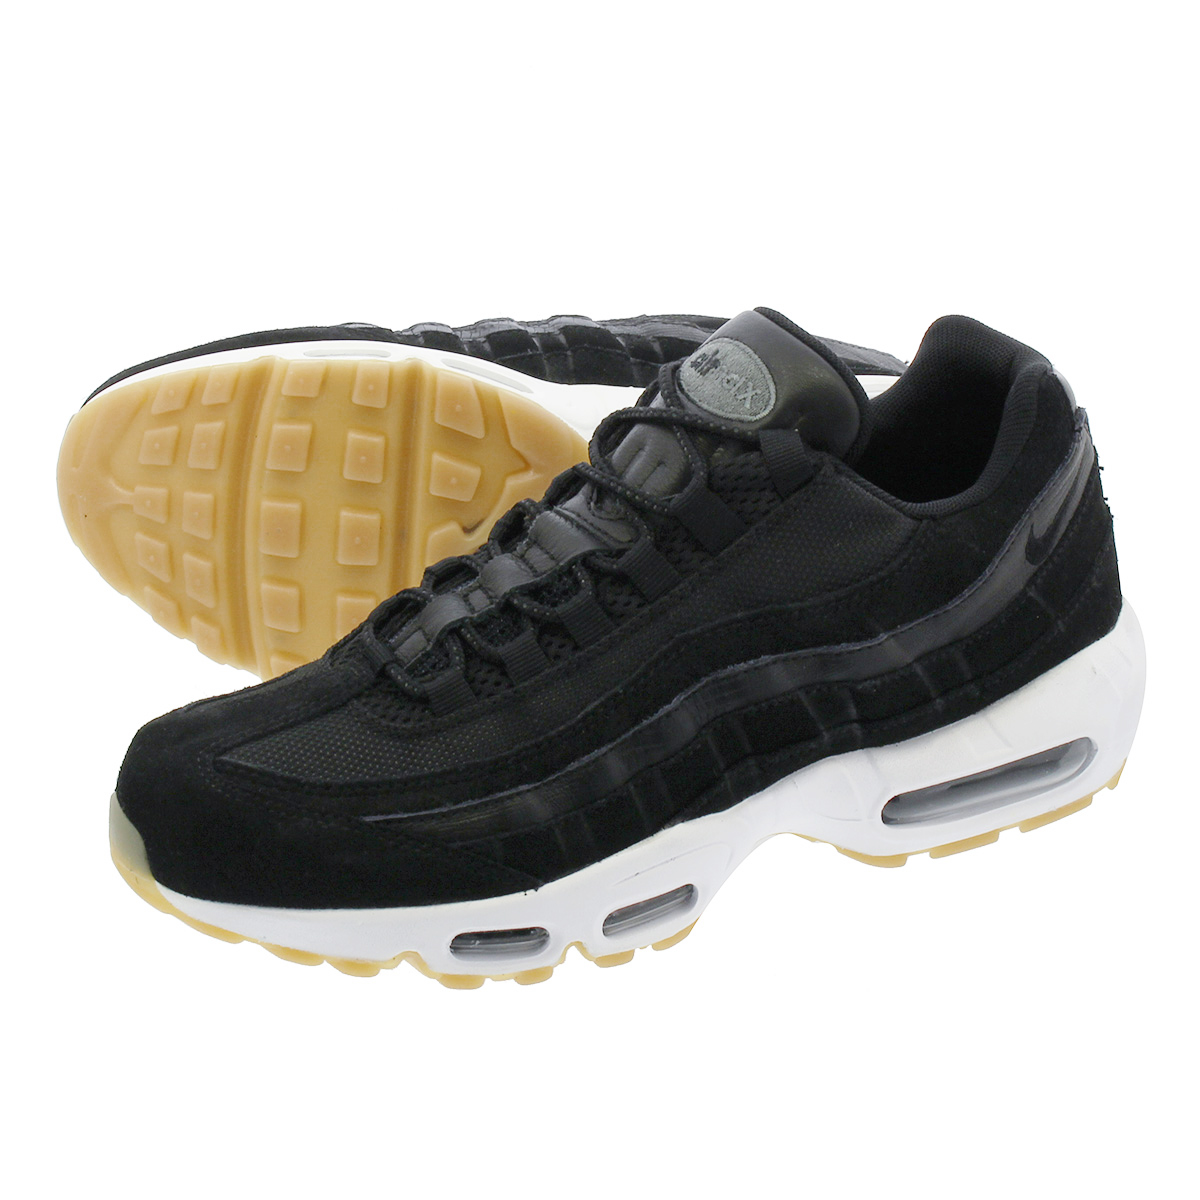 on sale b5eed 2eaef NIKE AIR MAX 95 PREMIUM Kie Ney AMAX 95 premium BLACK/DARK GREY/WHITE  538,416-016